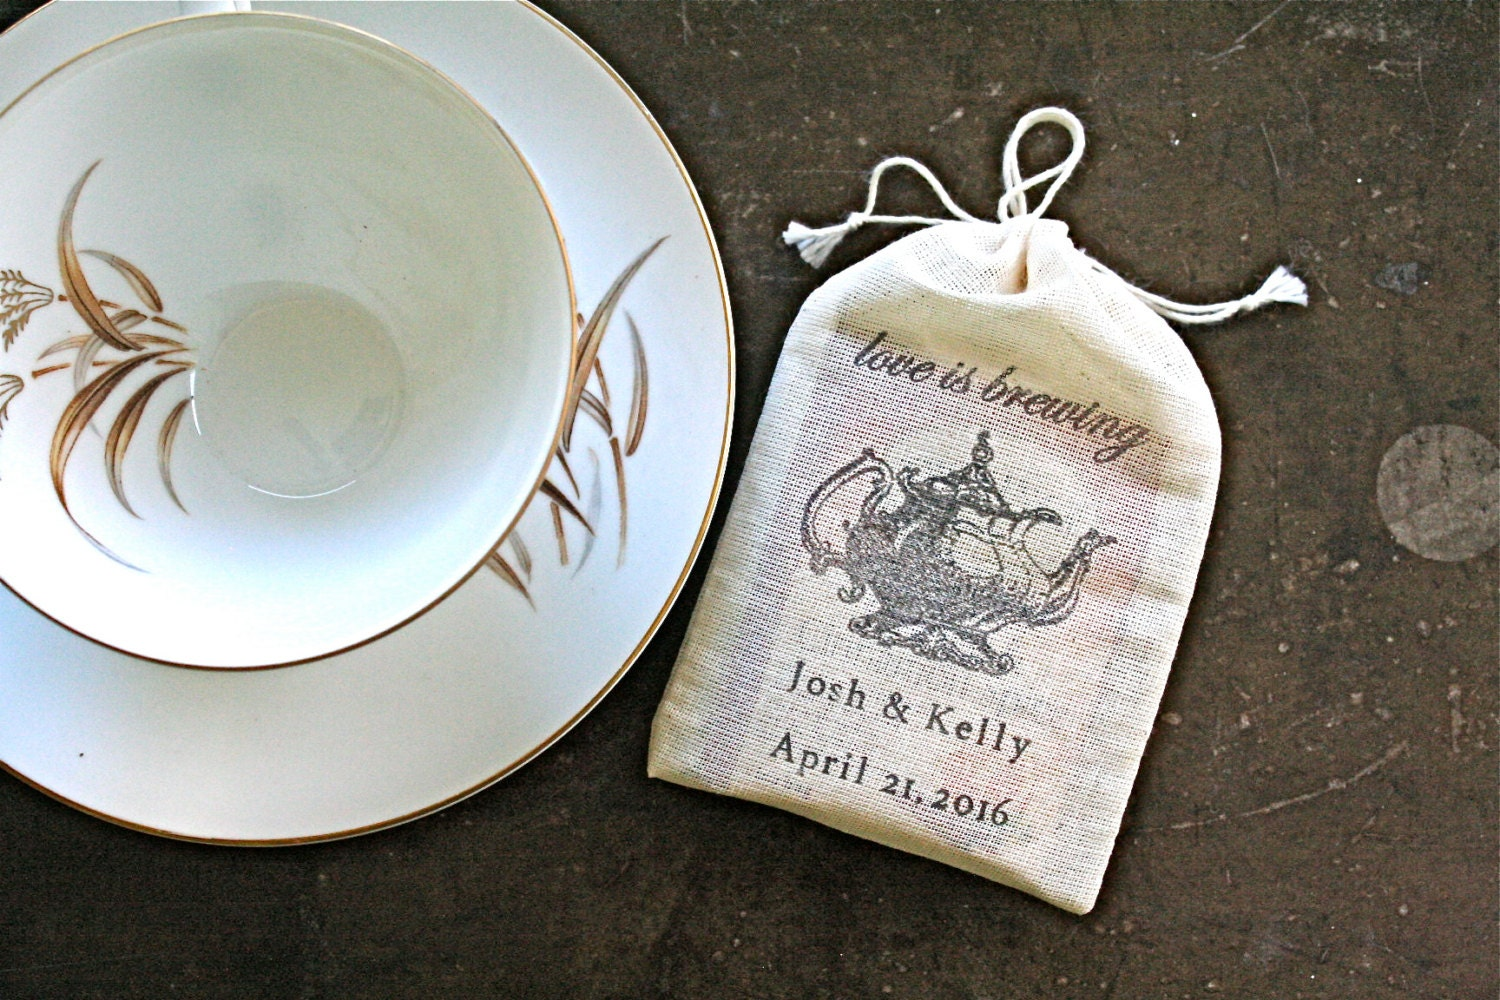 Personalized wedding favor bags 3x4.5. Set of 25 double